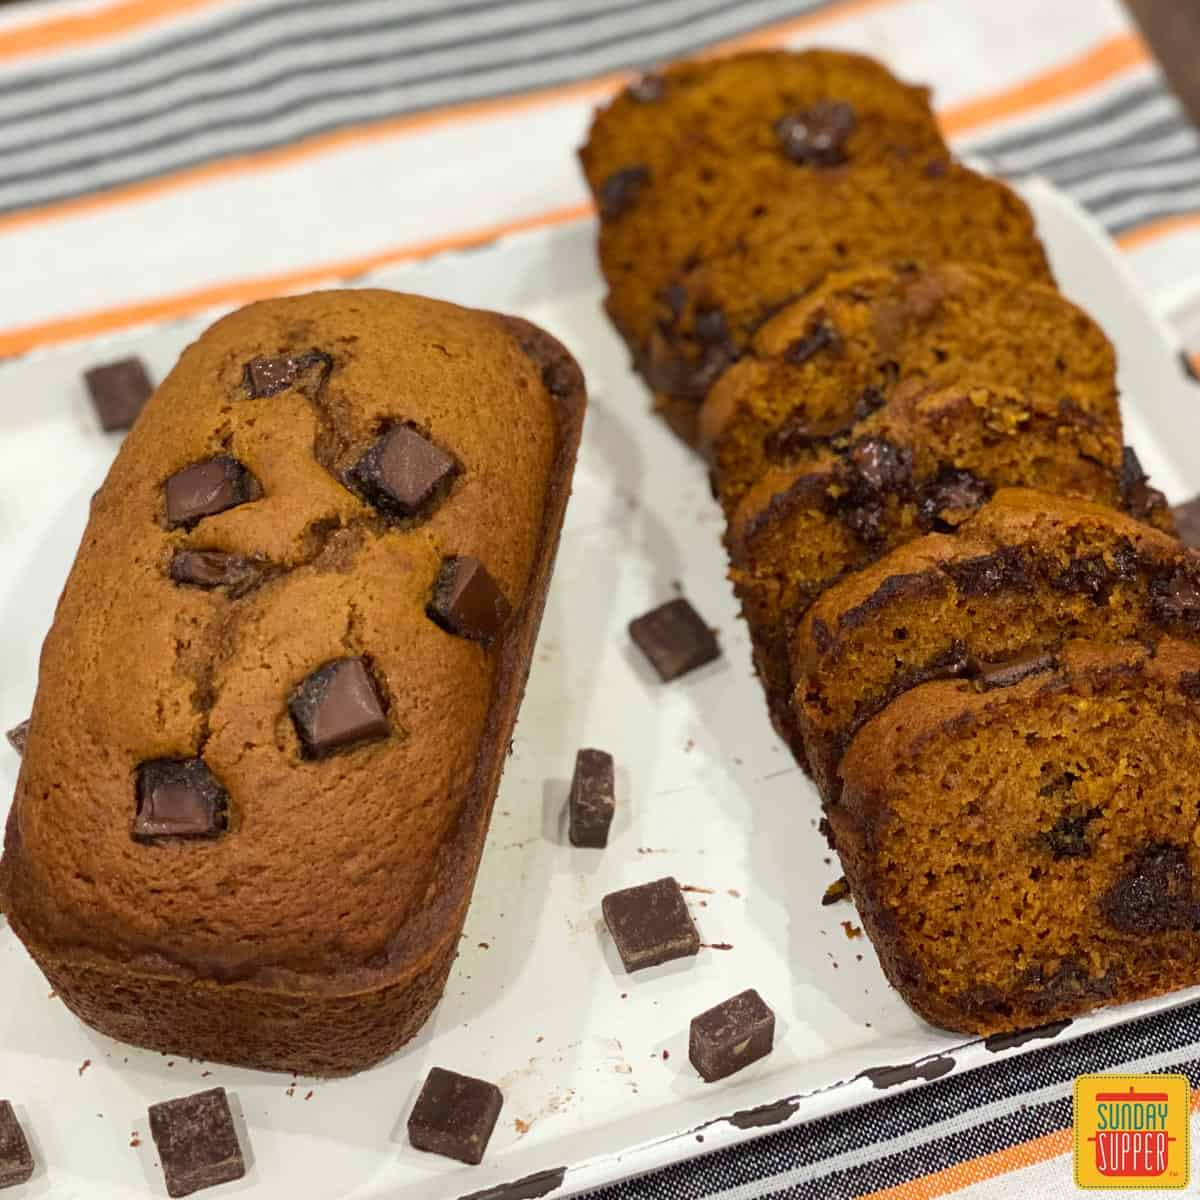 A loaf of Instant Pot Pumpkin Chocolate Chip Bread with another loaf sliced next to it